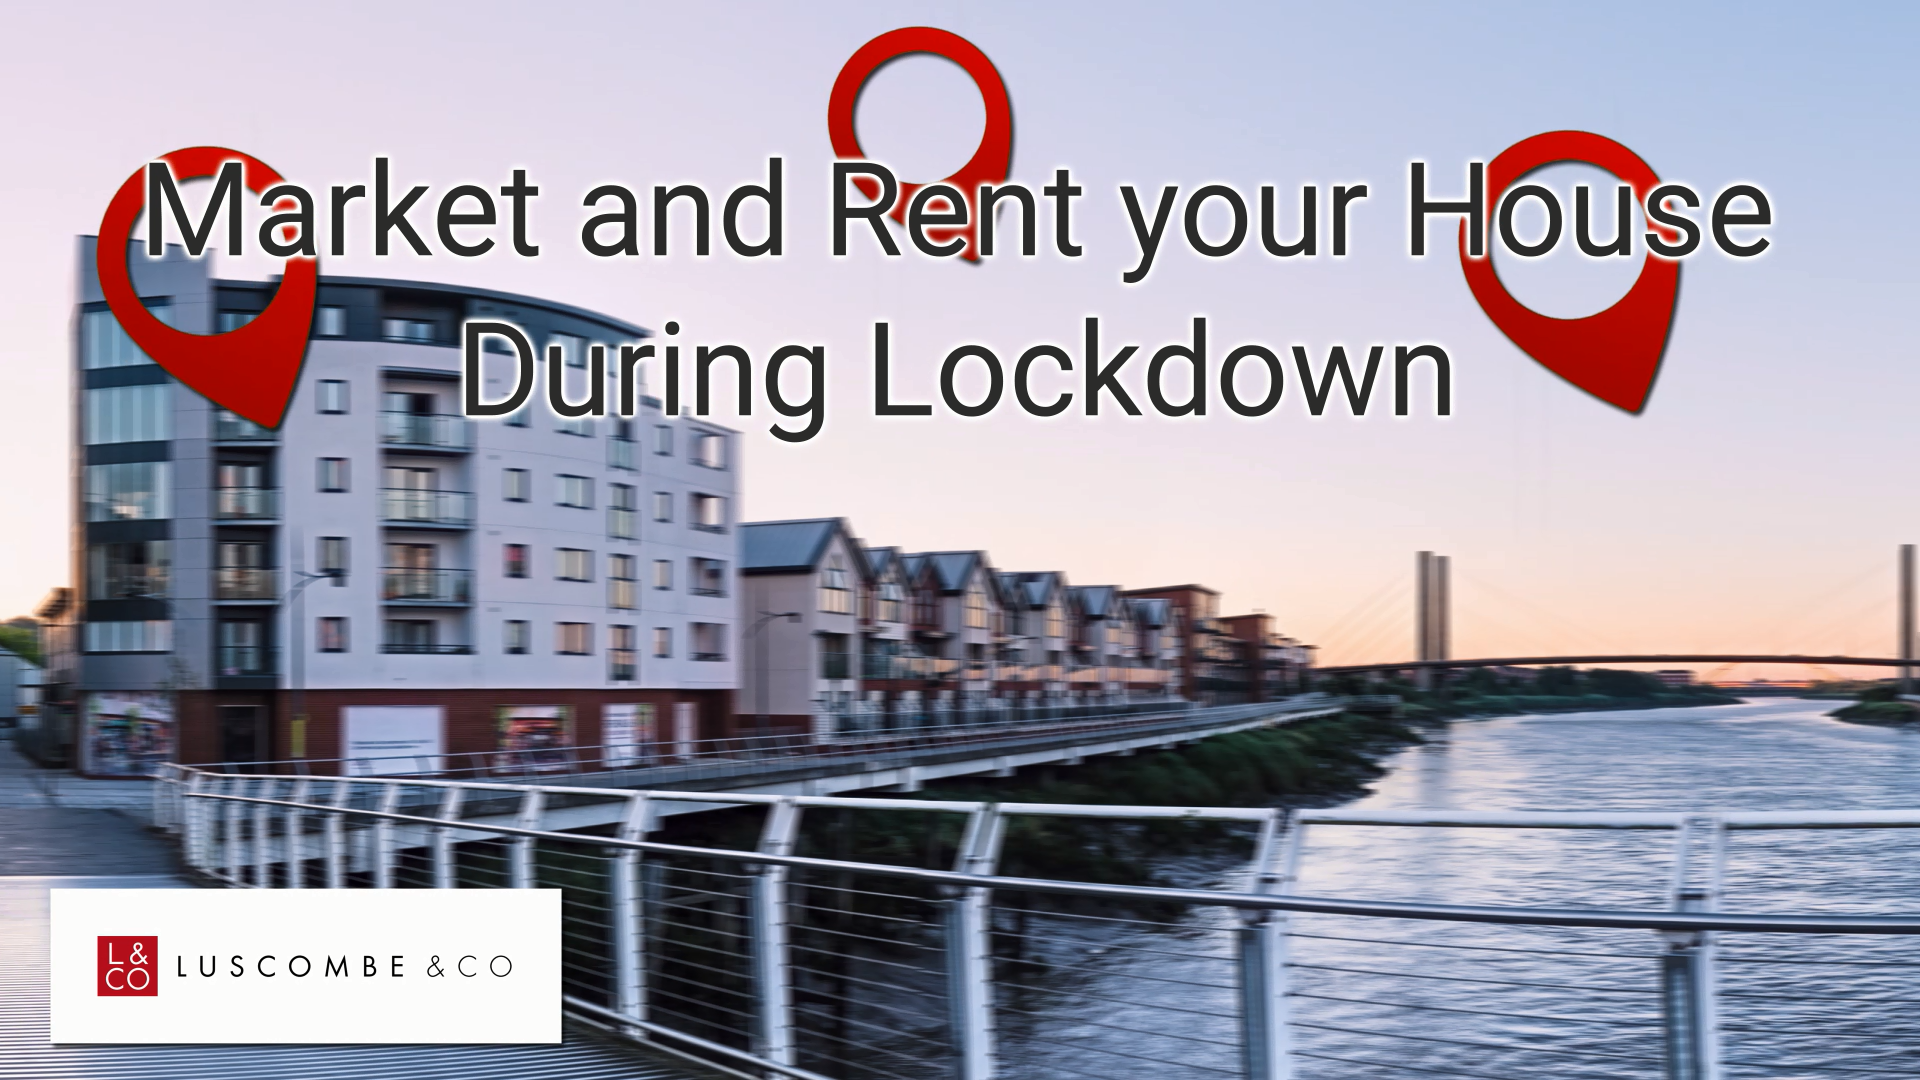 Market and Rent Your House During Lockdown